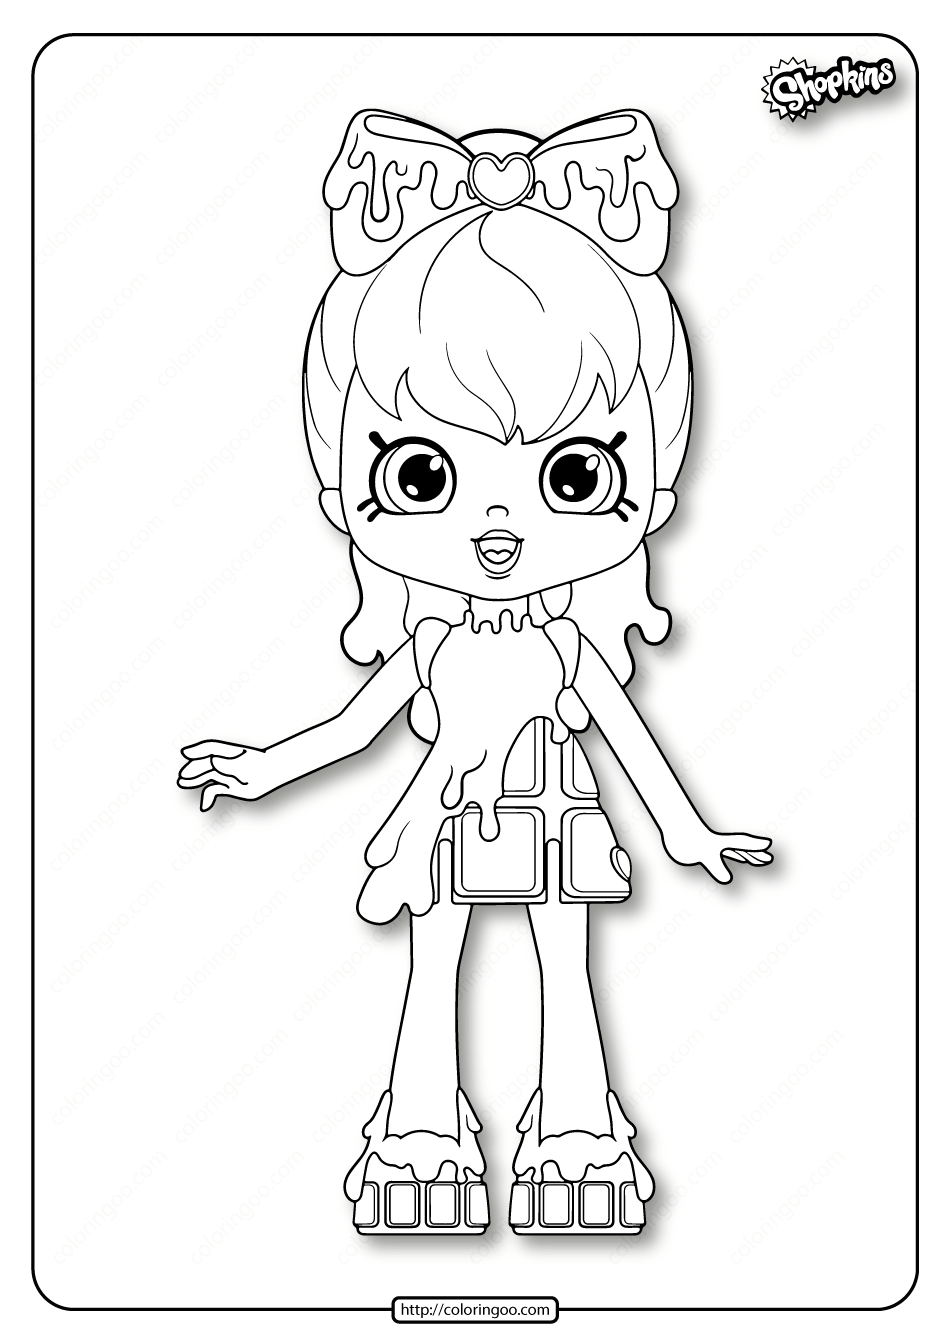 Printable Shopkins Cocolette Coloring Pages